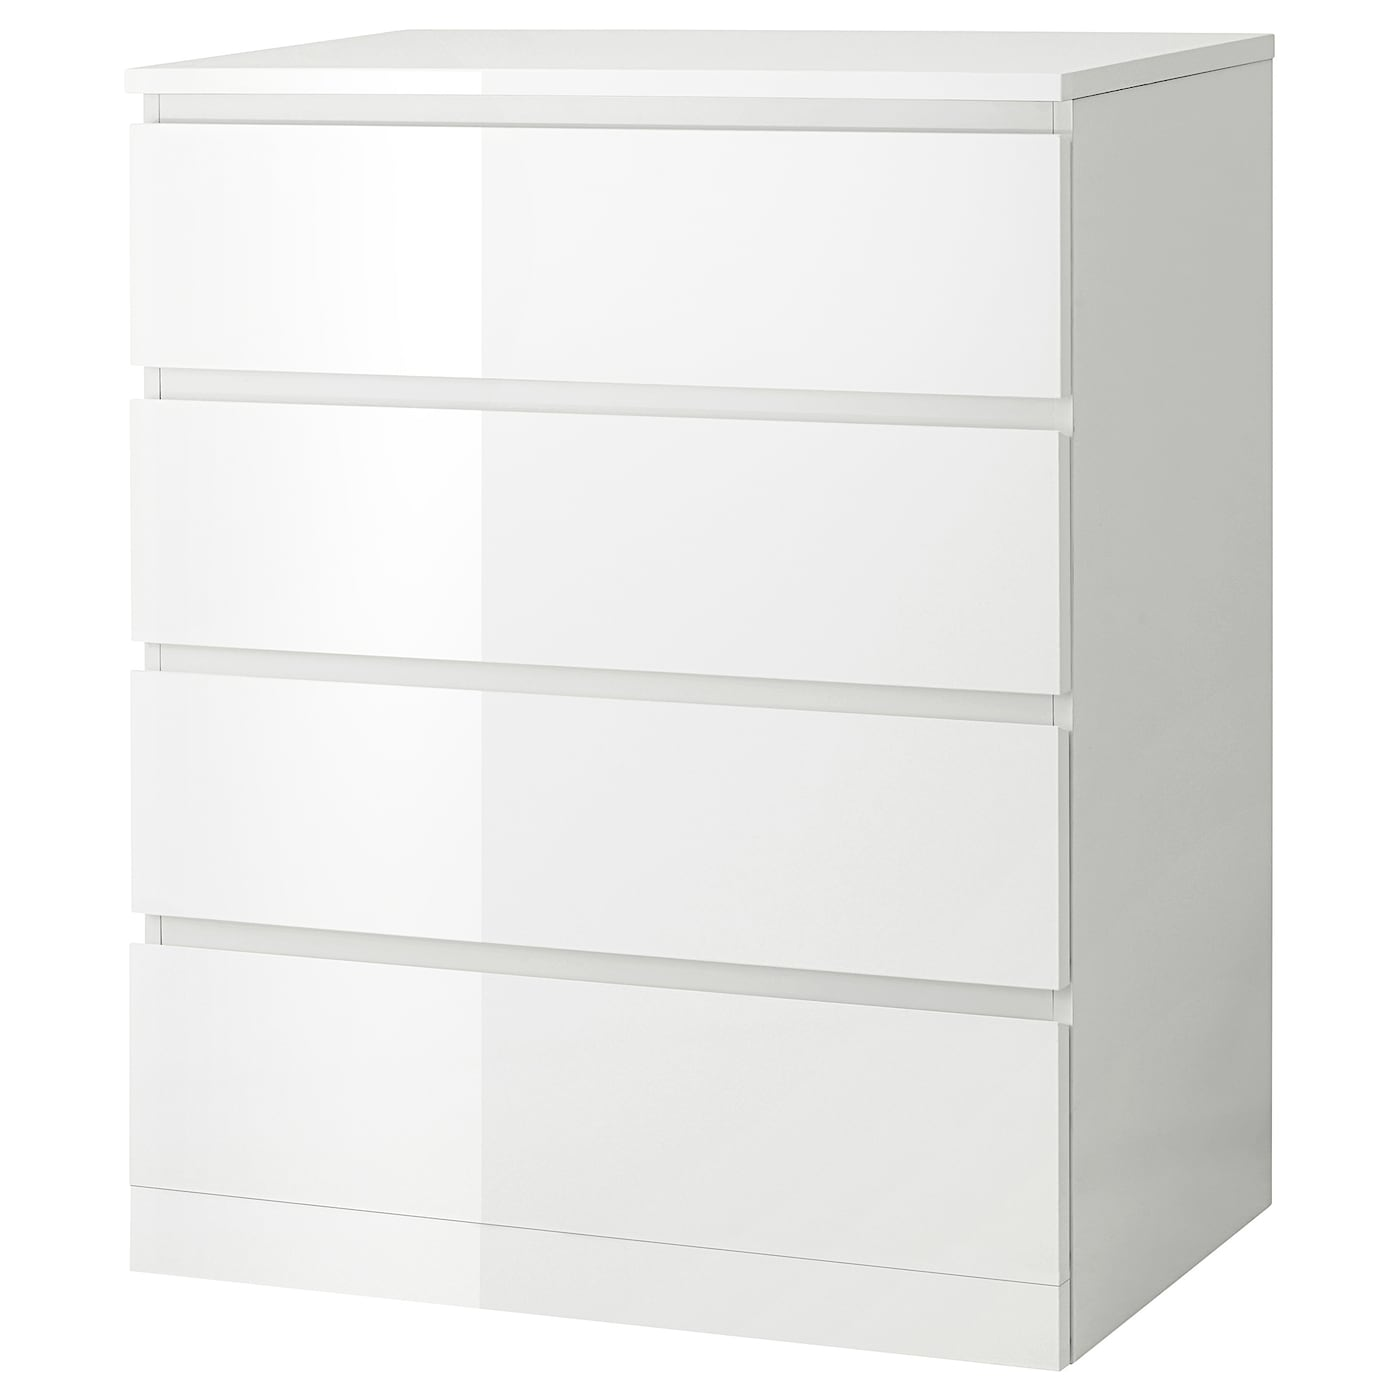 MALM Chest of 5 drawers - high-gloss white 5x5 cm